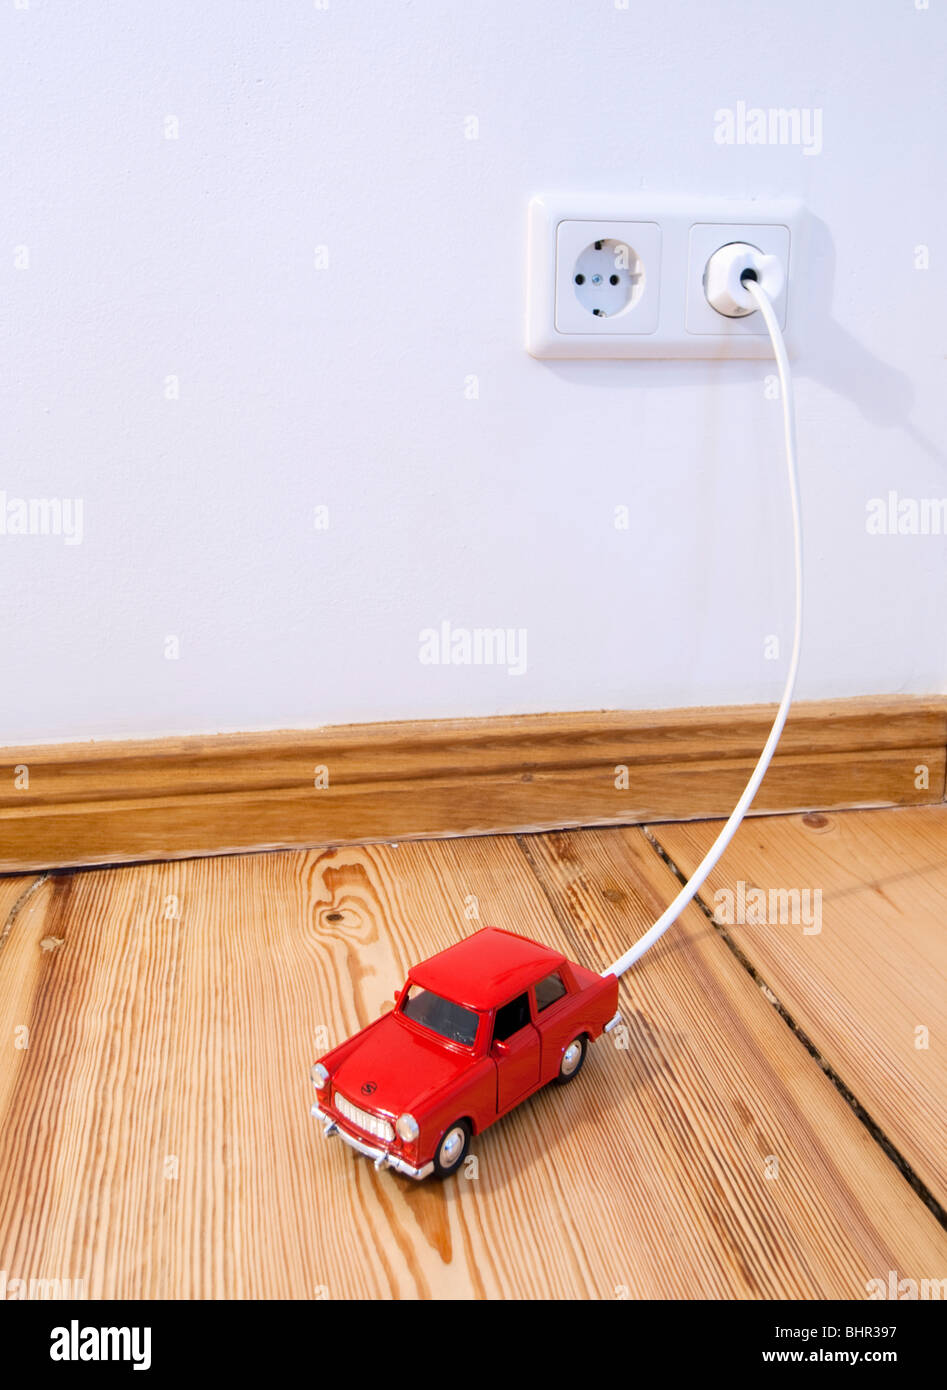 Concept of toy electric car being recharged by plug-in connection to electric supply in the home - Stock Image